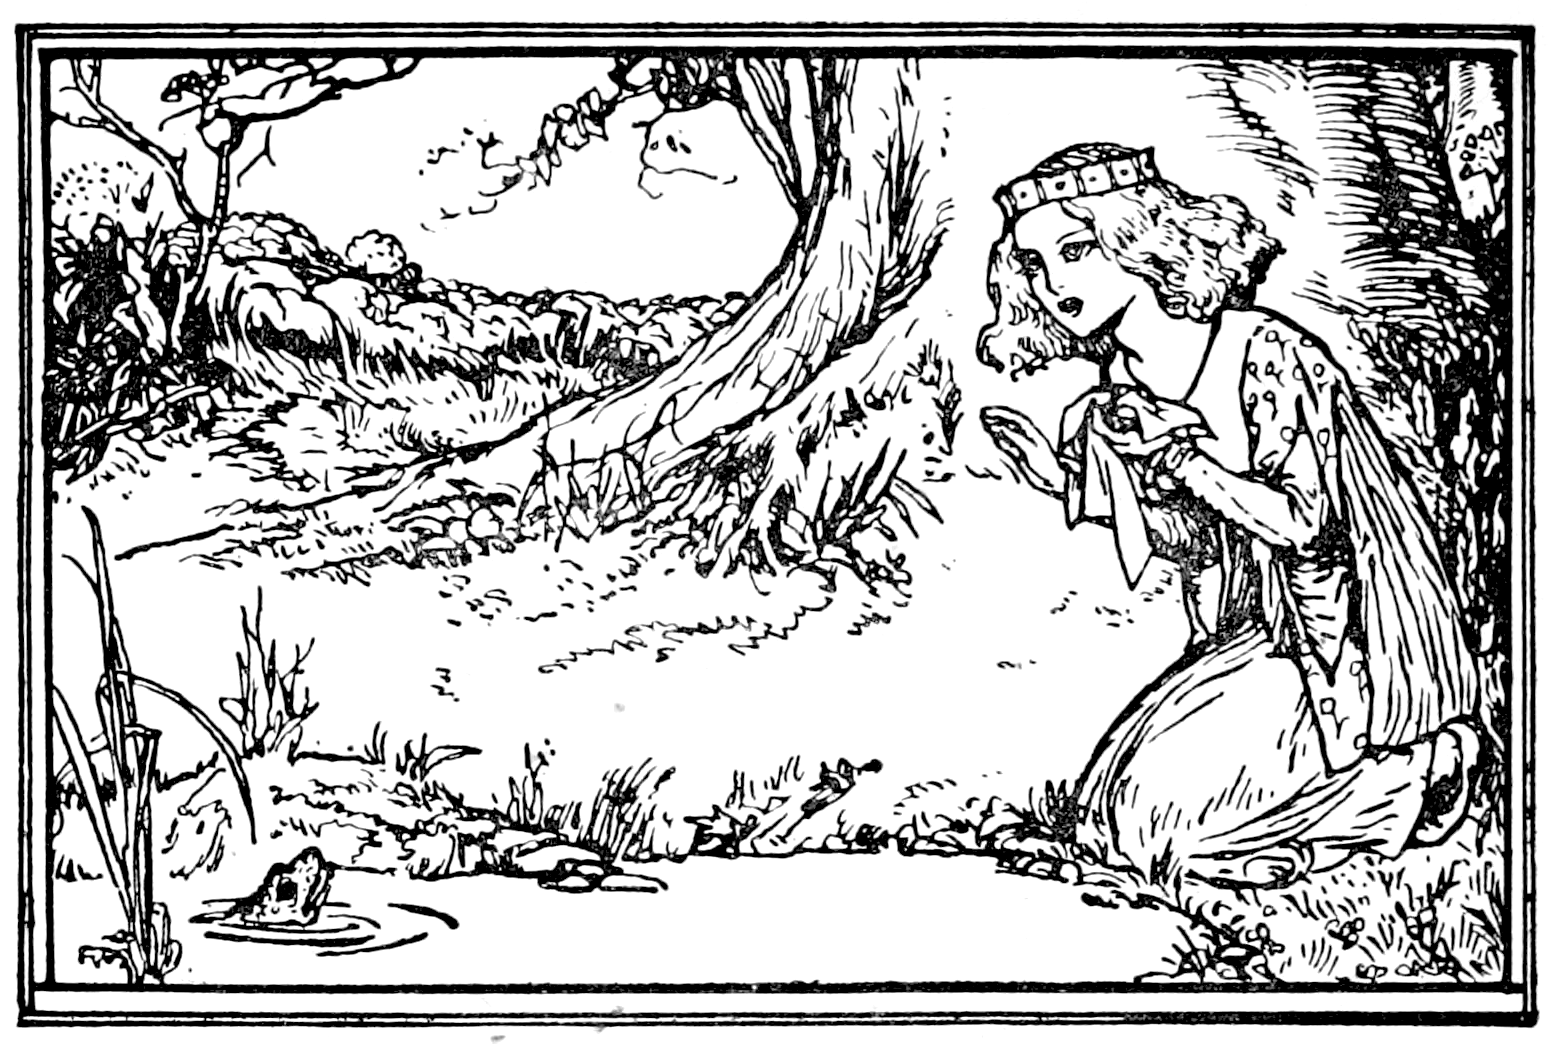 Robert anning bell frog prince from grimmus household tales